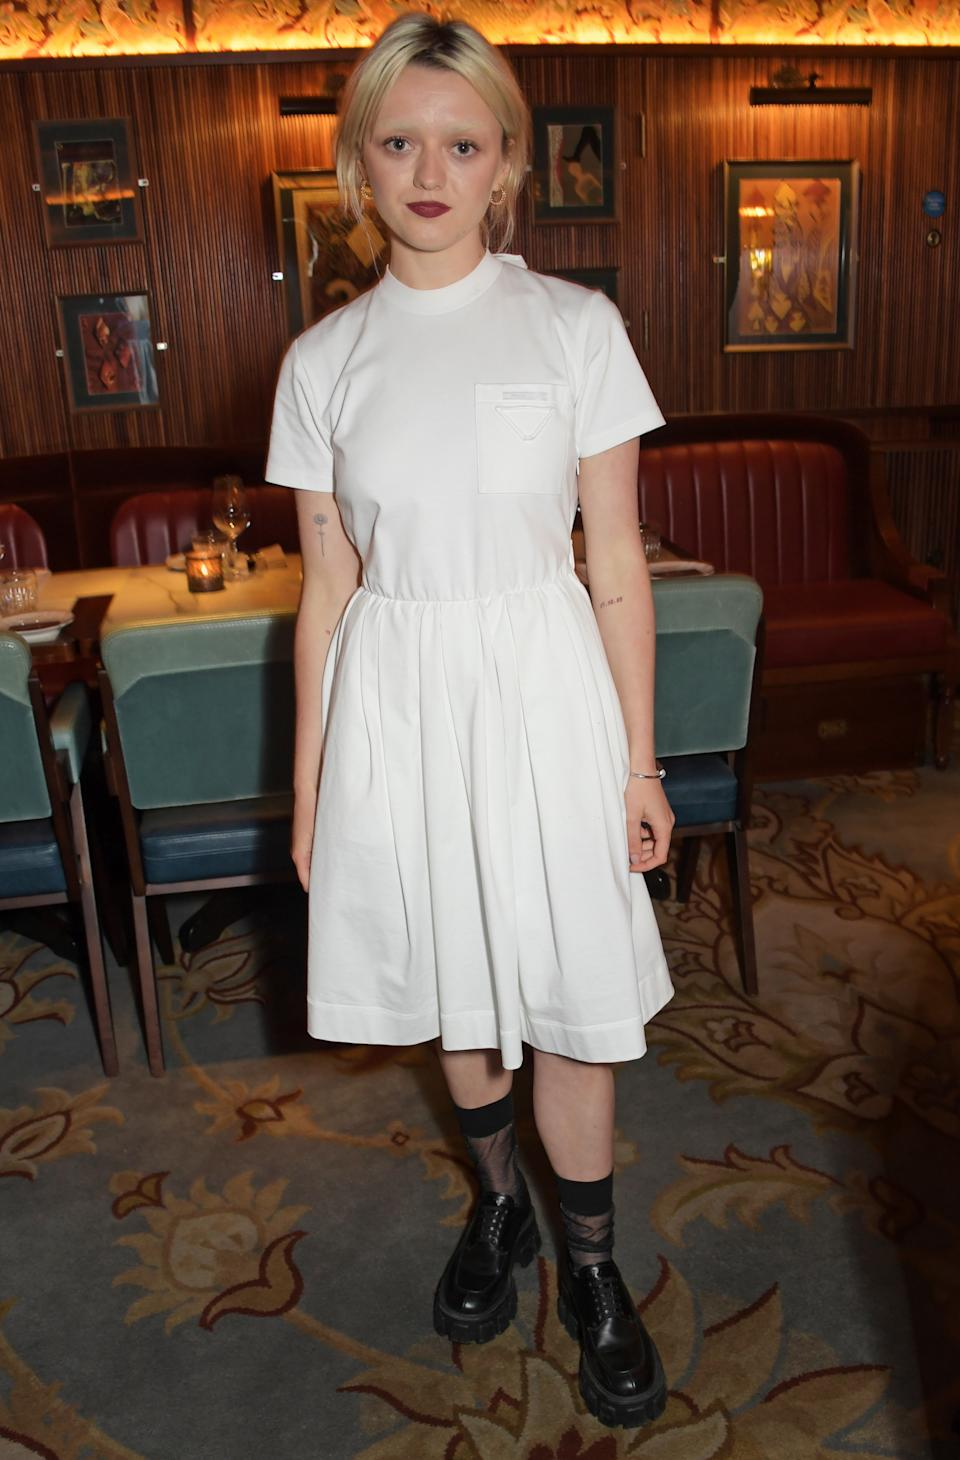 LONDON, ENGLAND - AUGUST 02:  Maisie Williams attends a private dinner which she hosted at Gymkhana London to celebrate the launch of new company film production company 'Rapt' on August 2, 2021 in London, England.  (Photo by David M. Benett/Dave Benett/Getty Images)